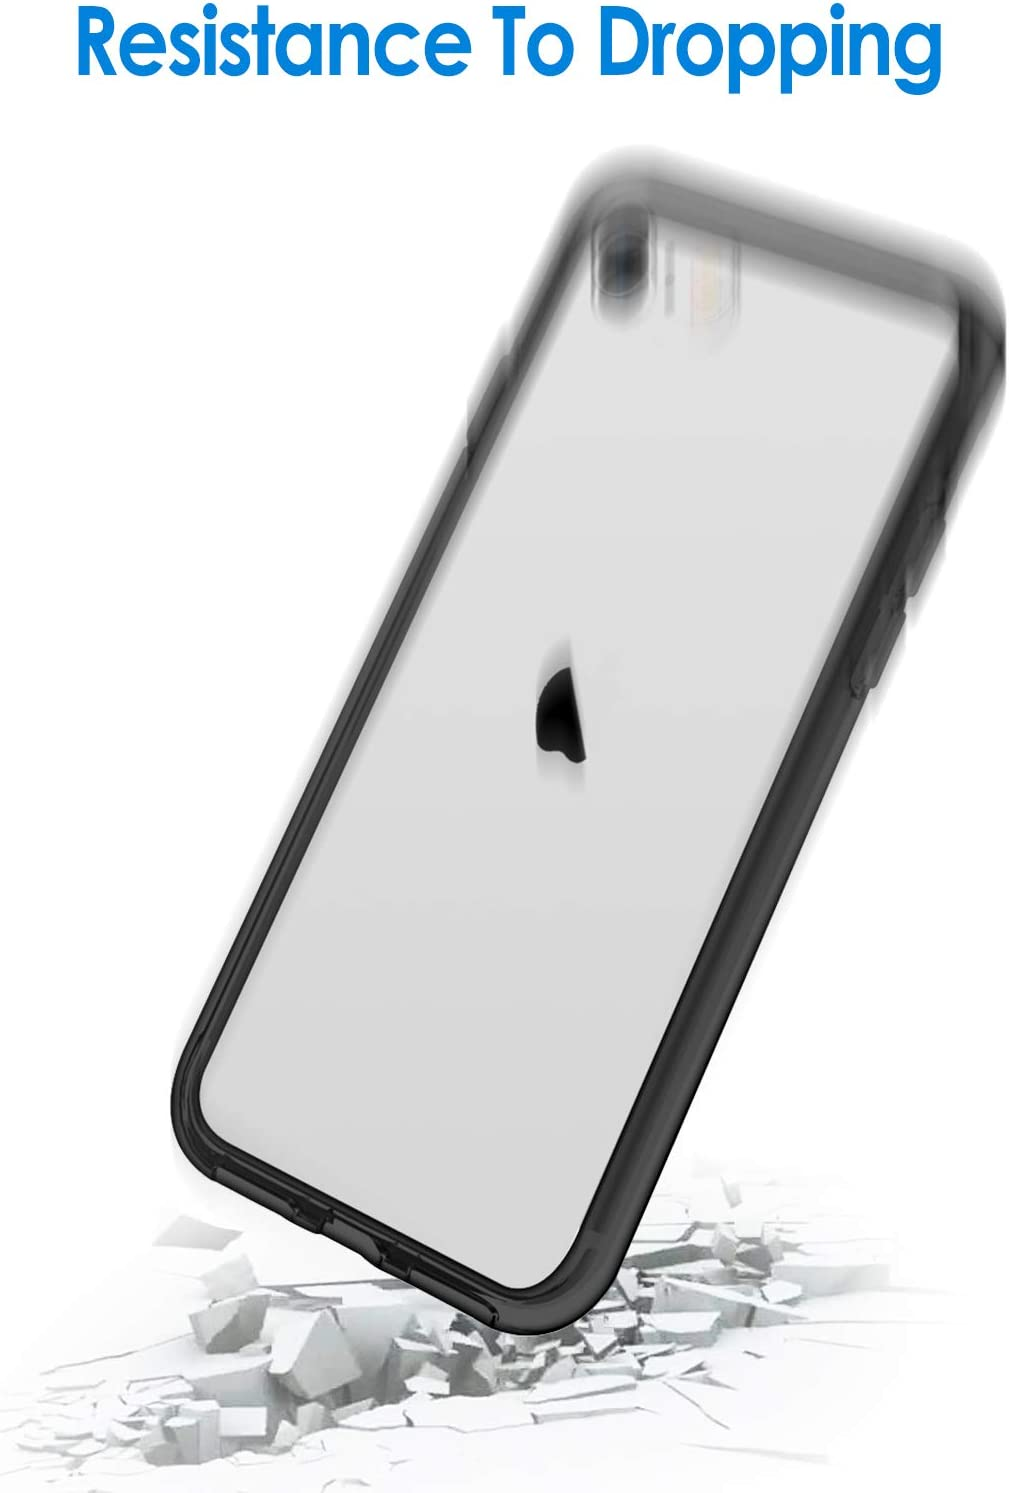 JETech Case Compatible with iPhone 8, iPhone 7, iPhone SE 2020, 4.7-Inch, Shockproof Bumper Cover, Anti-Scratch Clear Back, Dark Grey